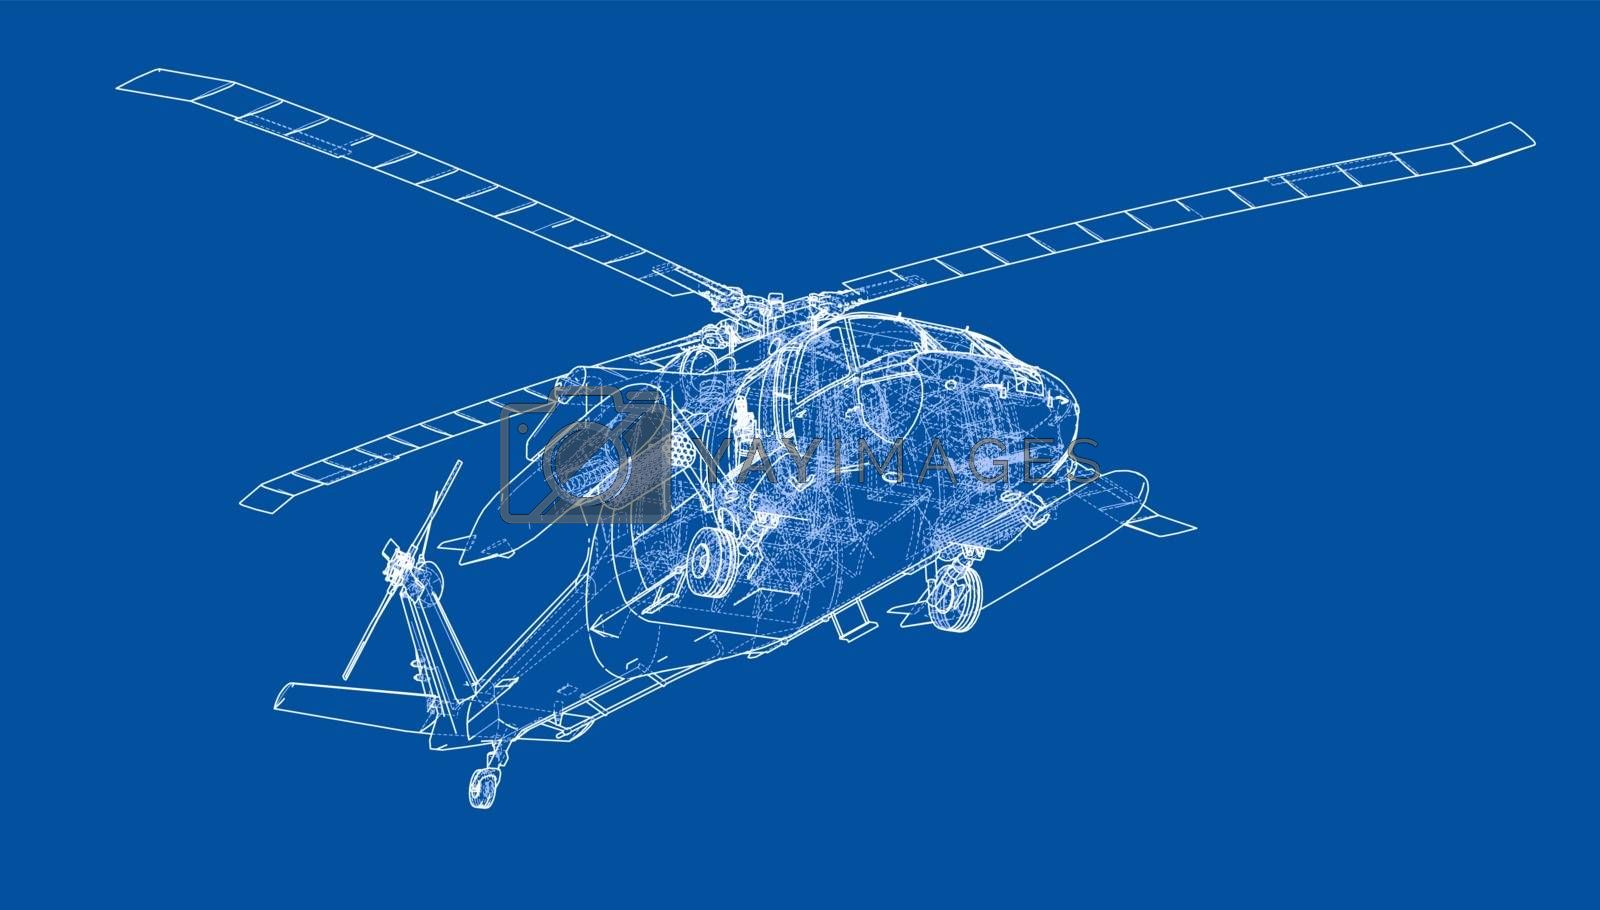 Helicopter outline. Military equipment by cherezoff